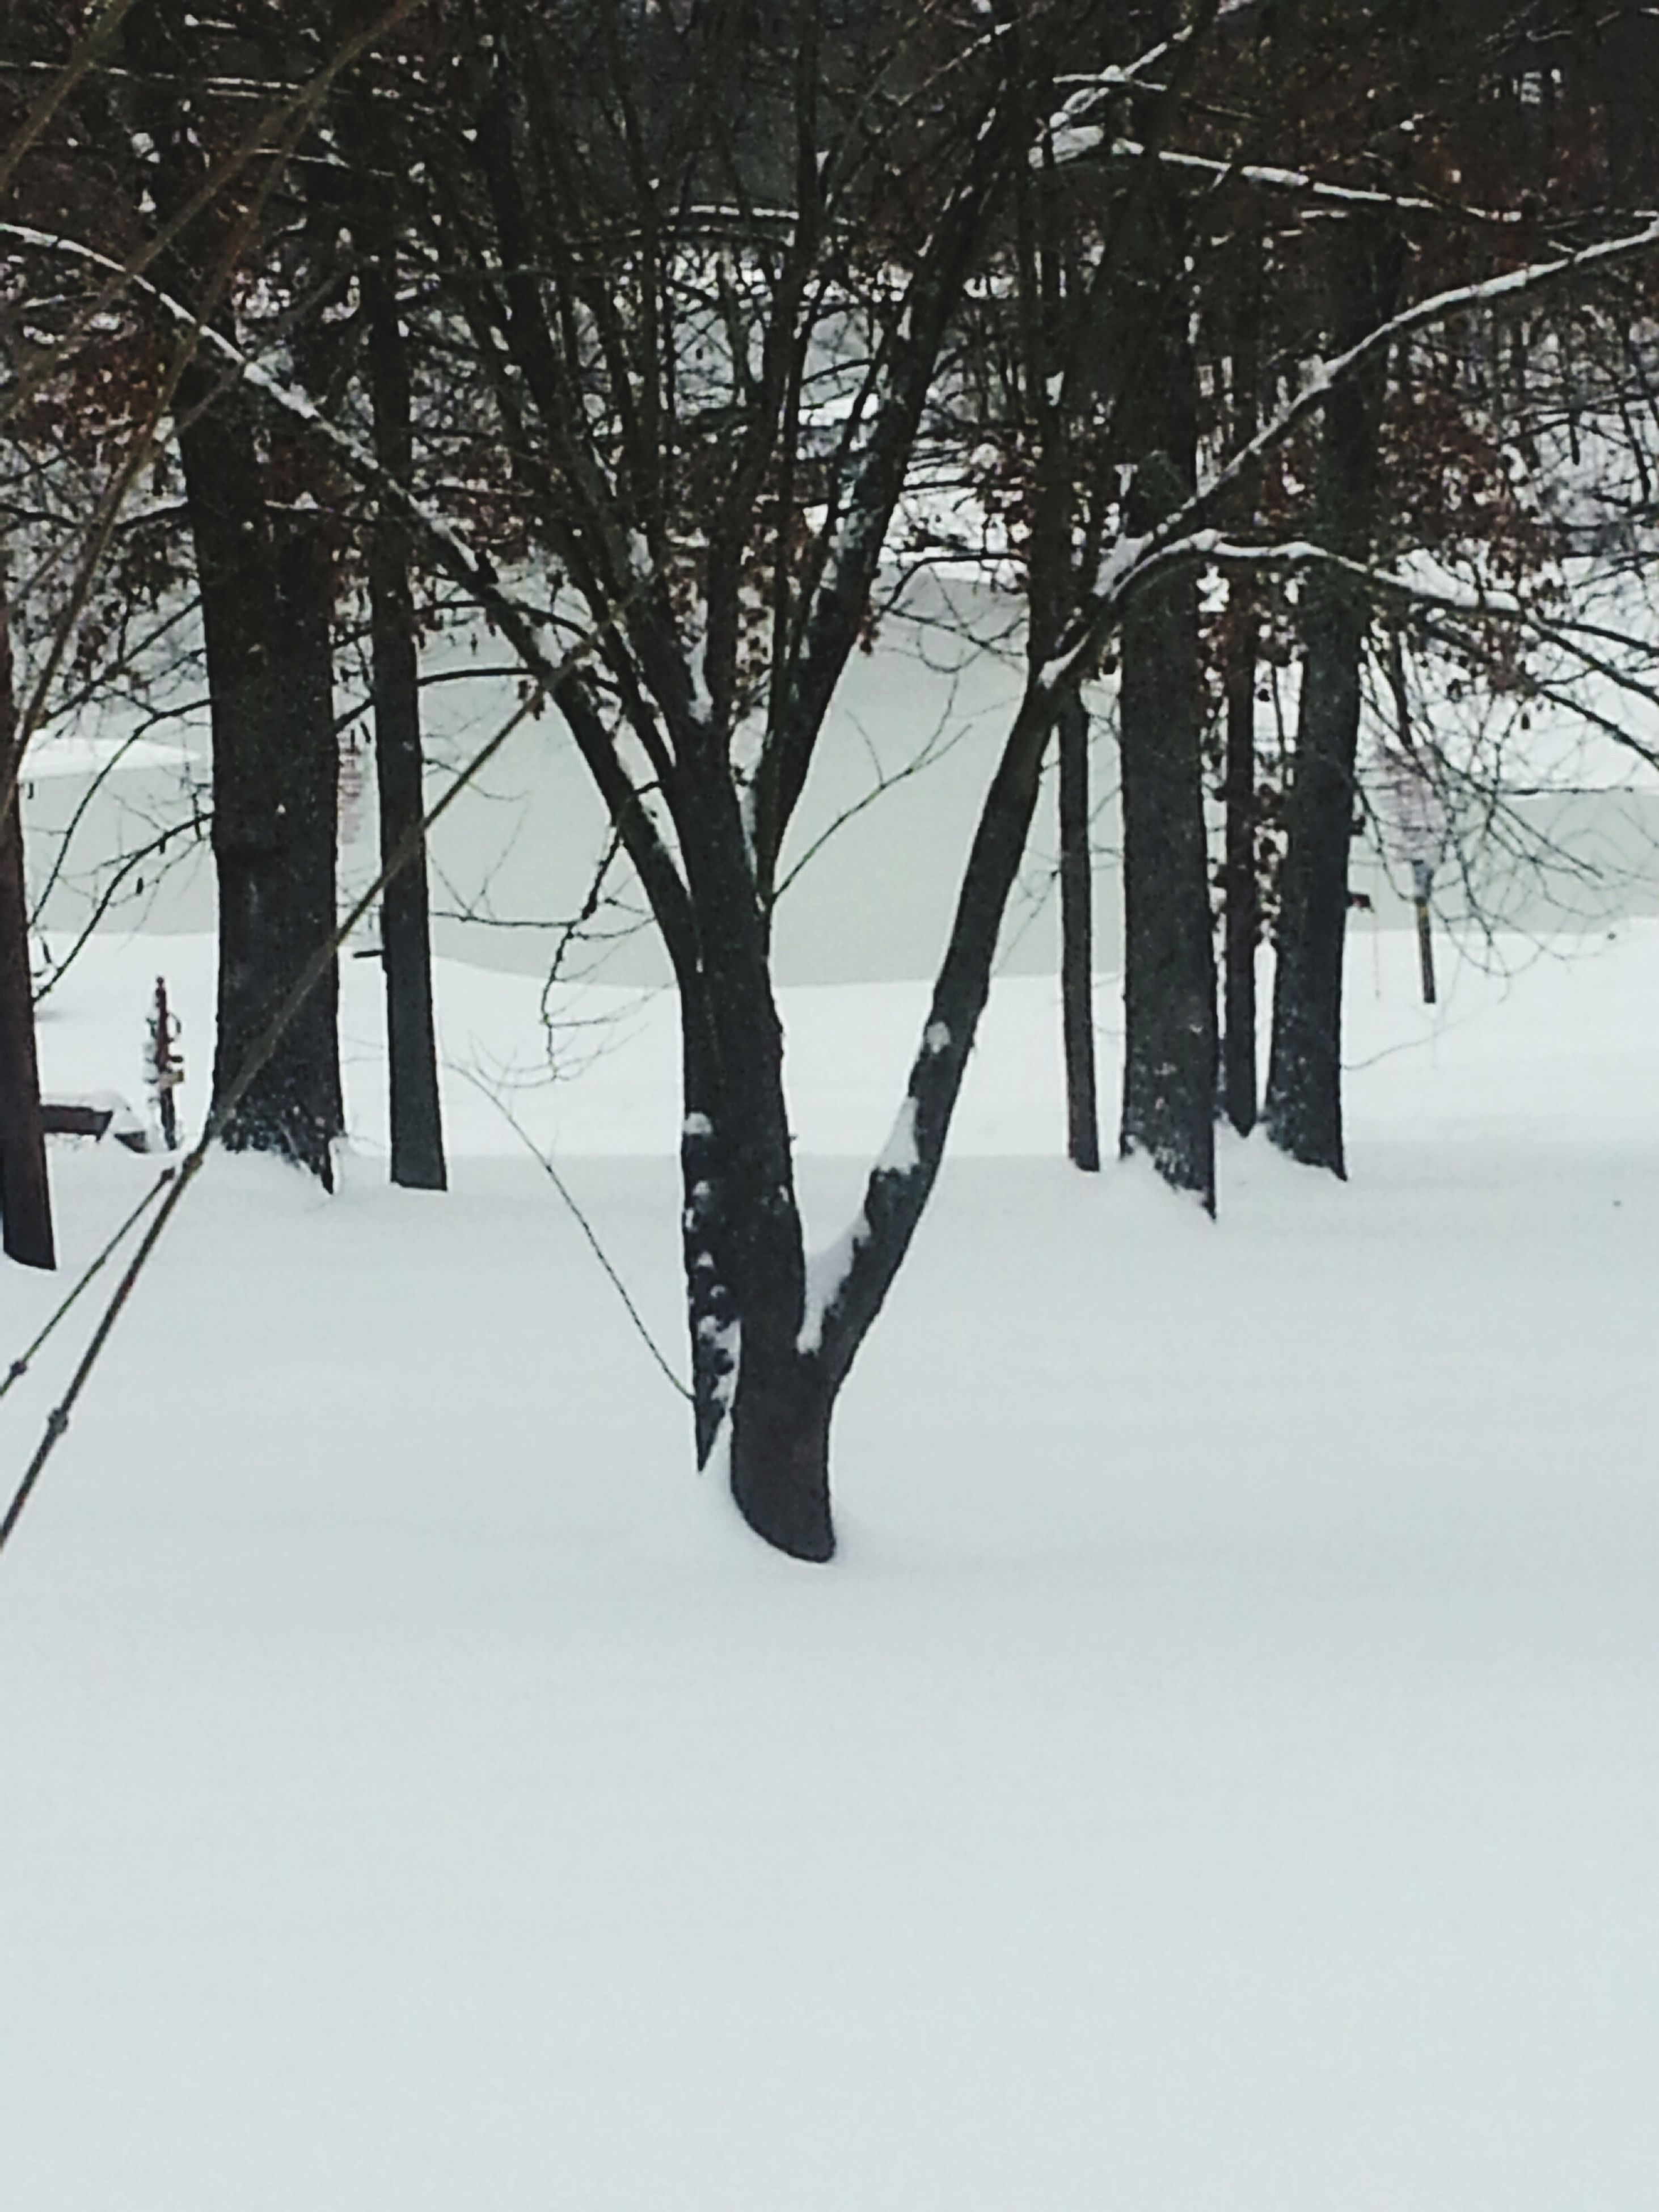 snow, winter, cold temperature, tree, season, bare tree, weather, tranquility, covering, tranquil scene, nature, branch, beauty in nature, landscape, tree trunk, covered, scenics, frozen, snow covered, white color